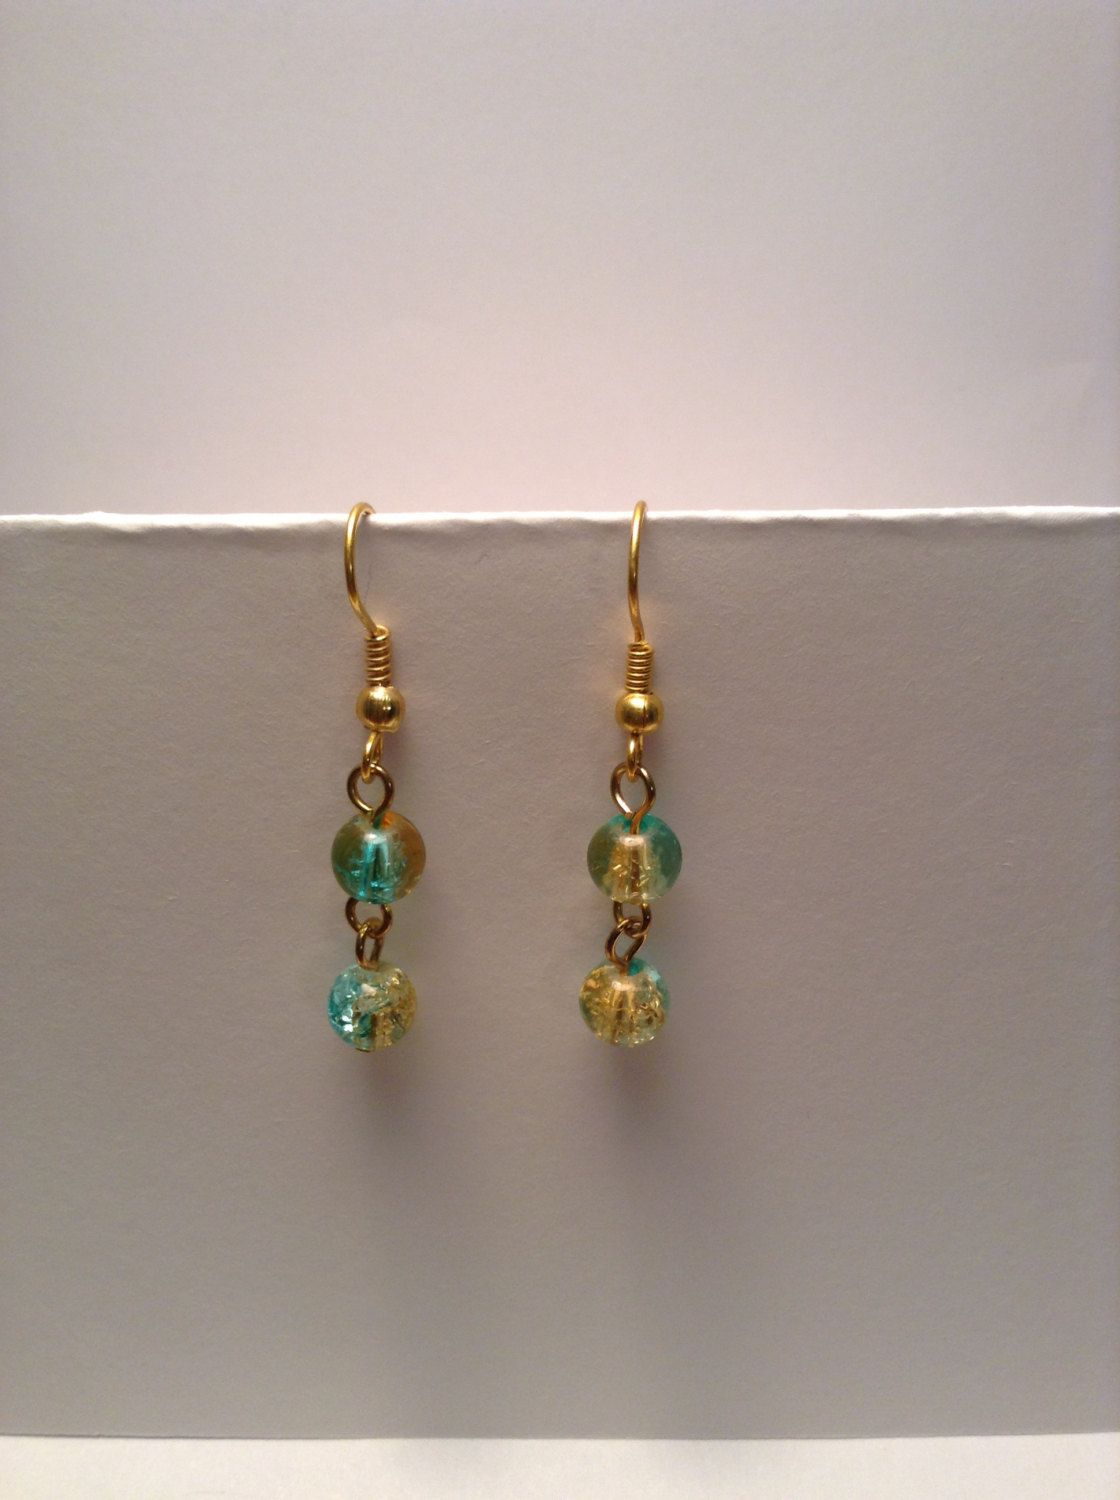 Blue and gold cracked glass dangle earrings by Shaylasjewelrybox on Etsy